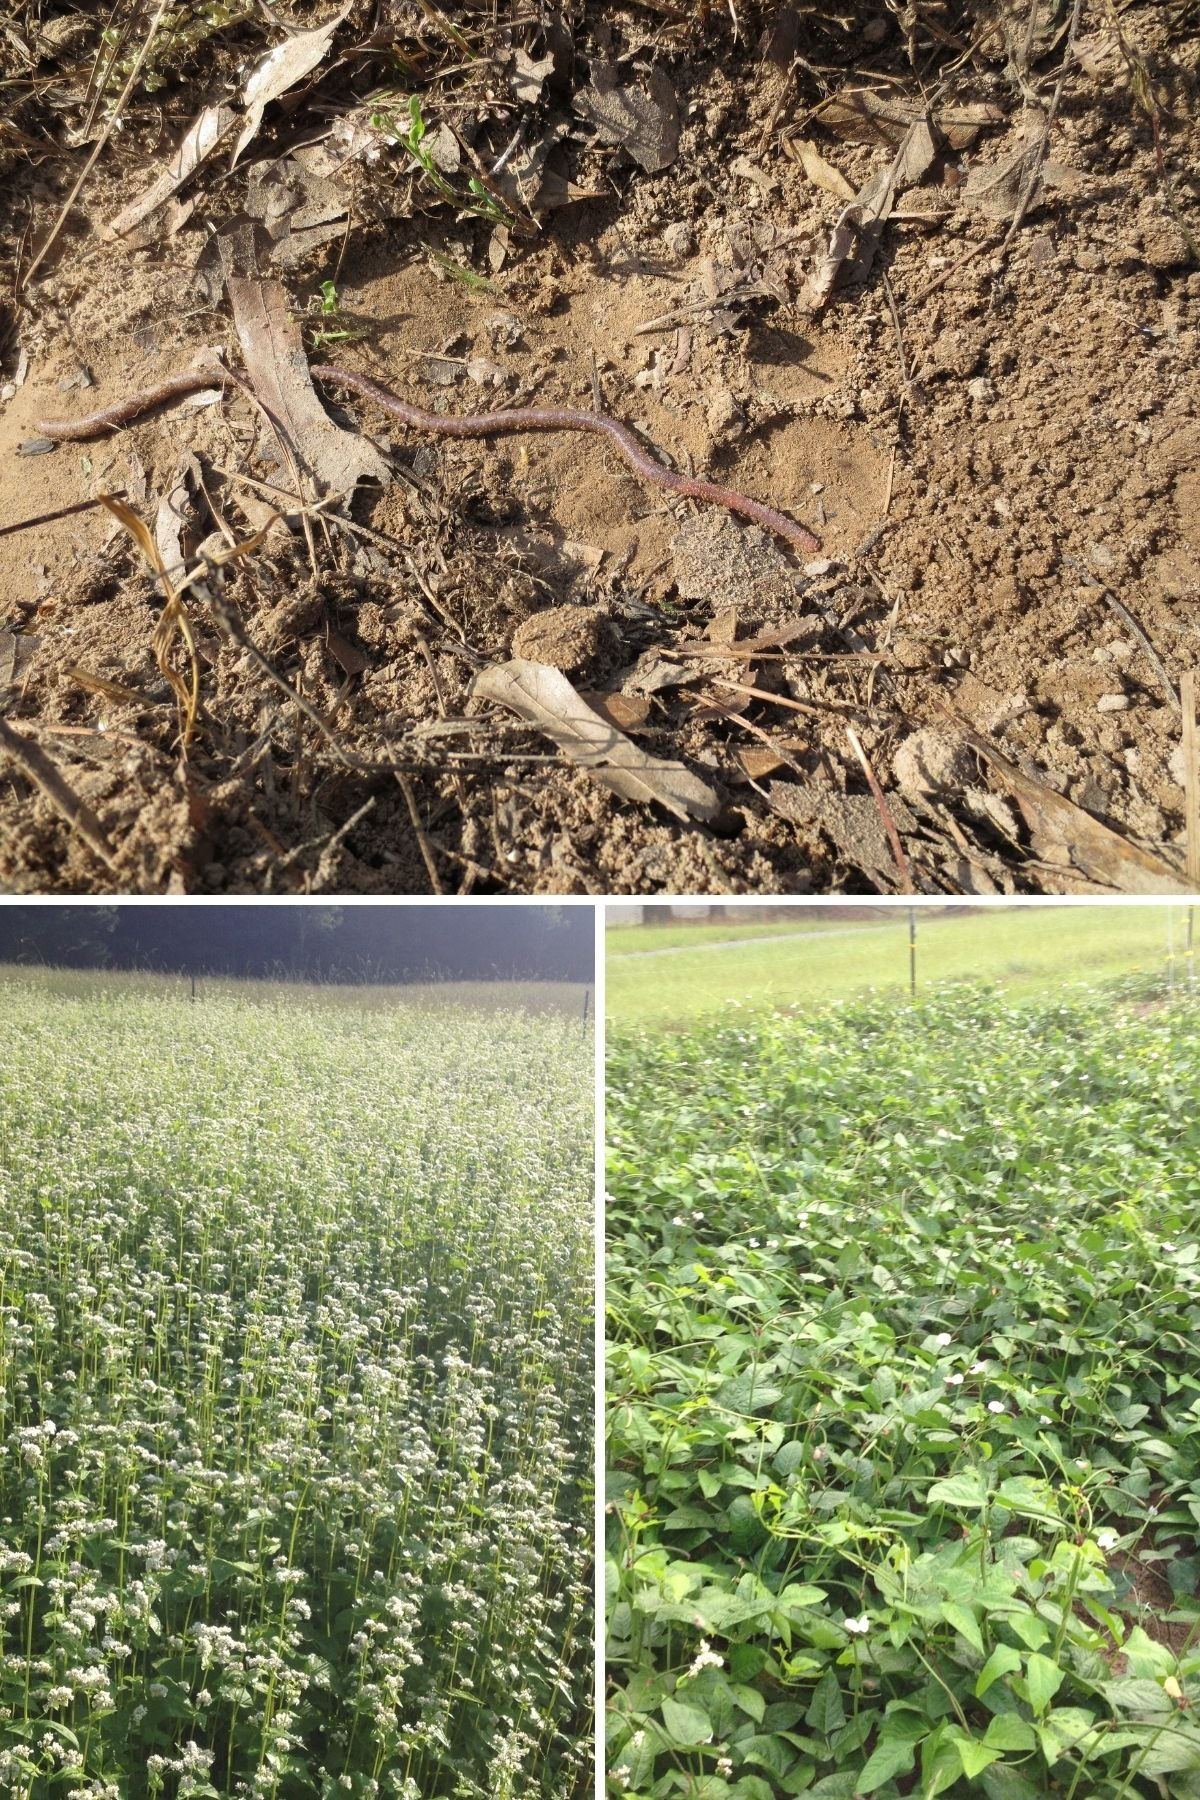 cover crops for gardens collage featuring a field of cover crops and a huge worm living in the extremely fertile soil made by cover crops